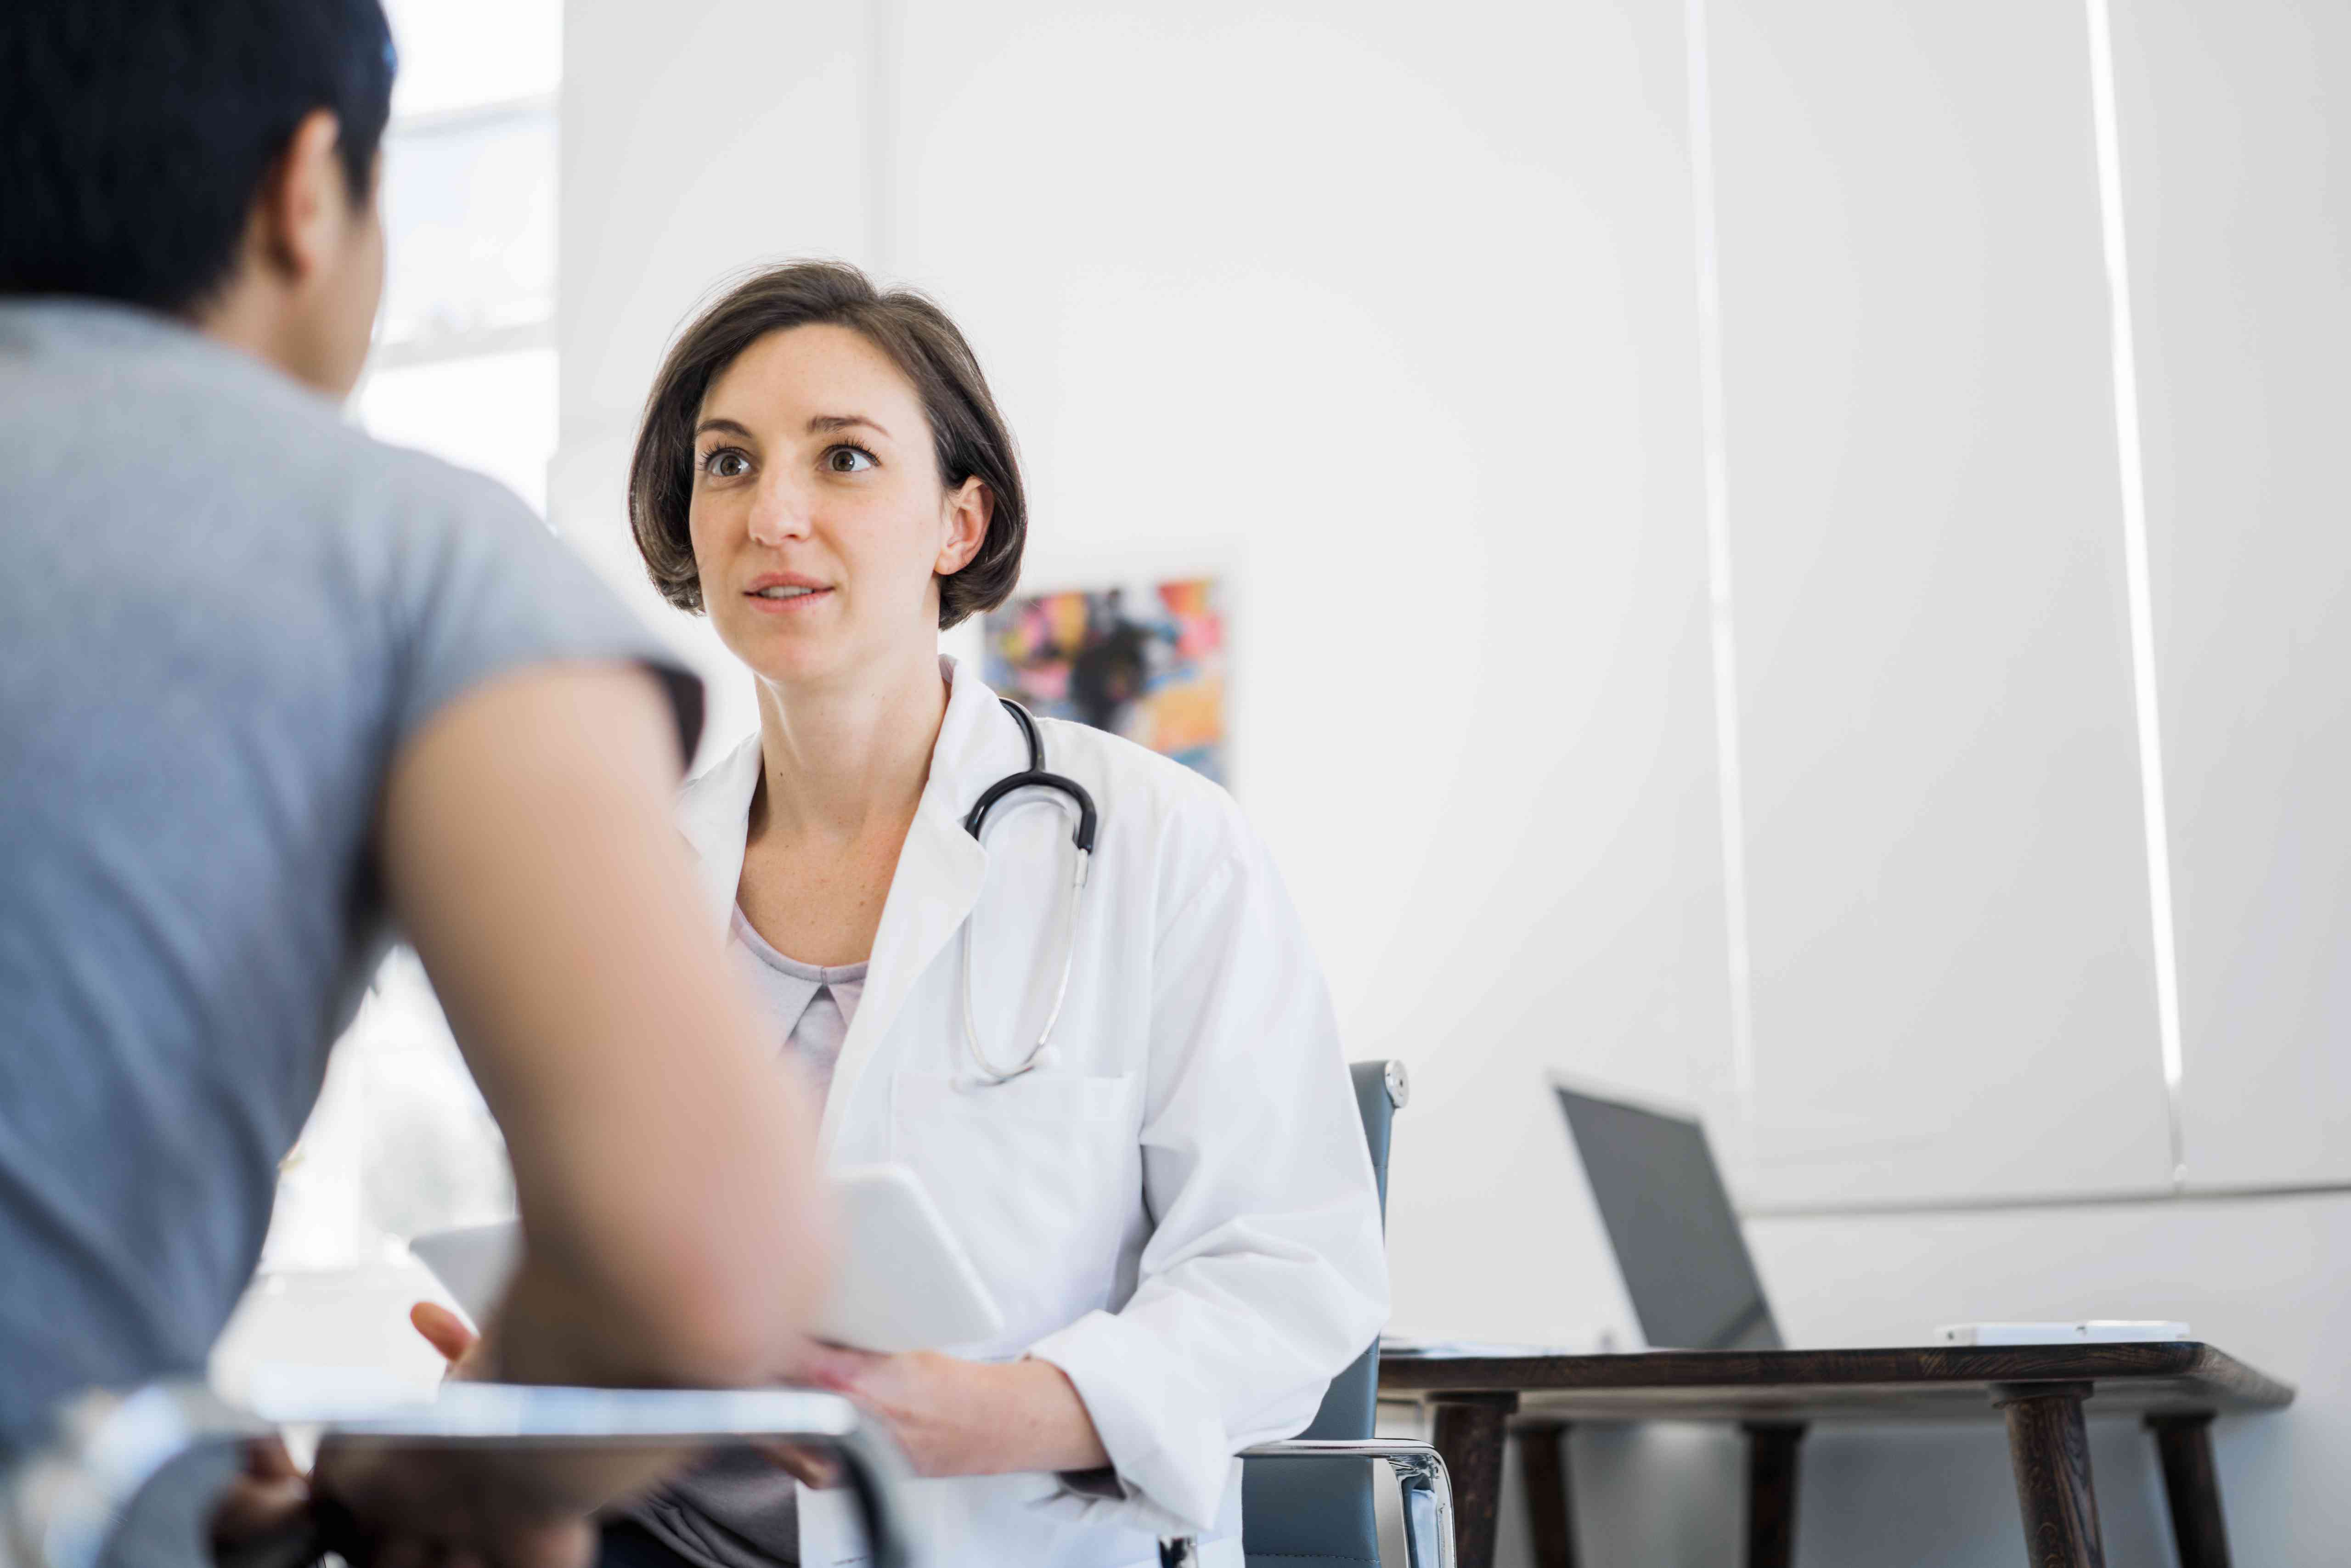 Female doctor going over test results with patient